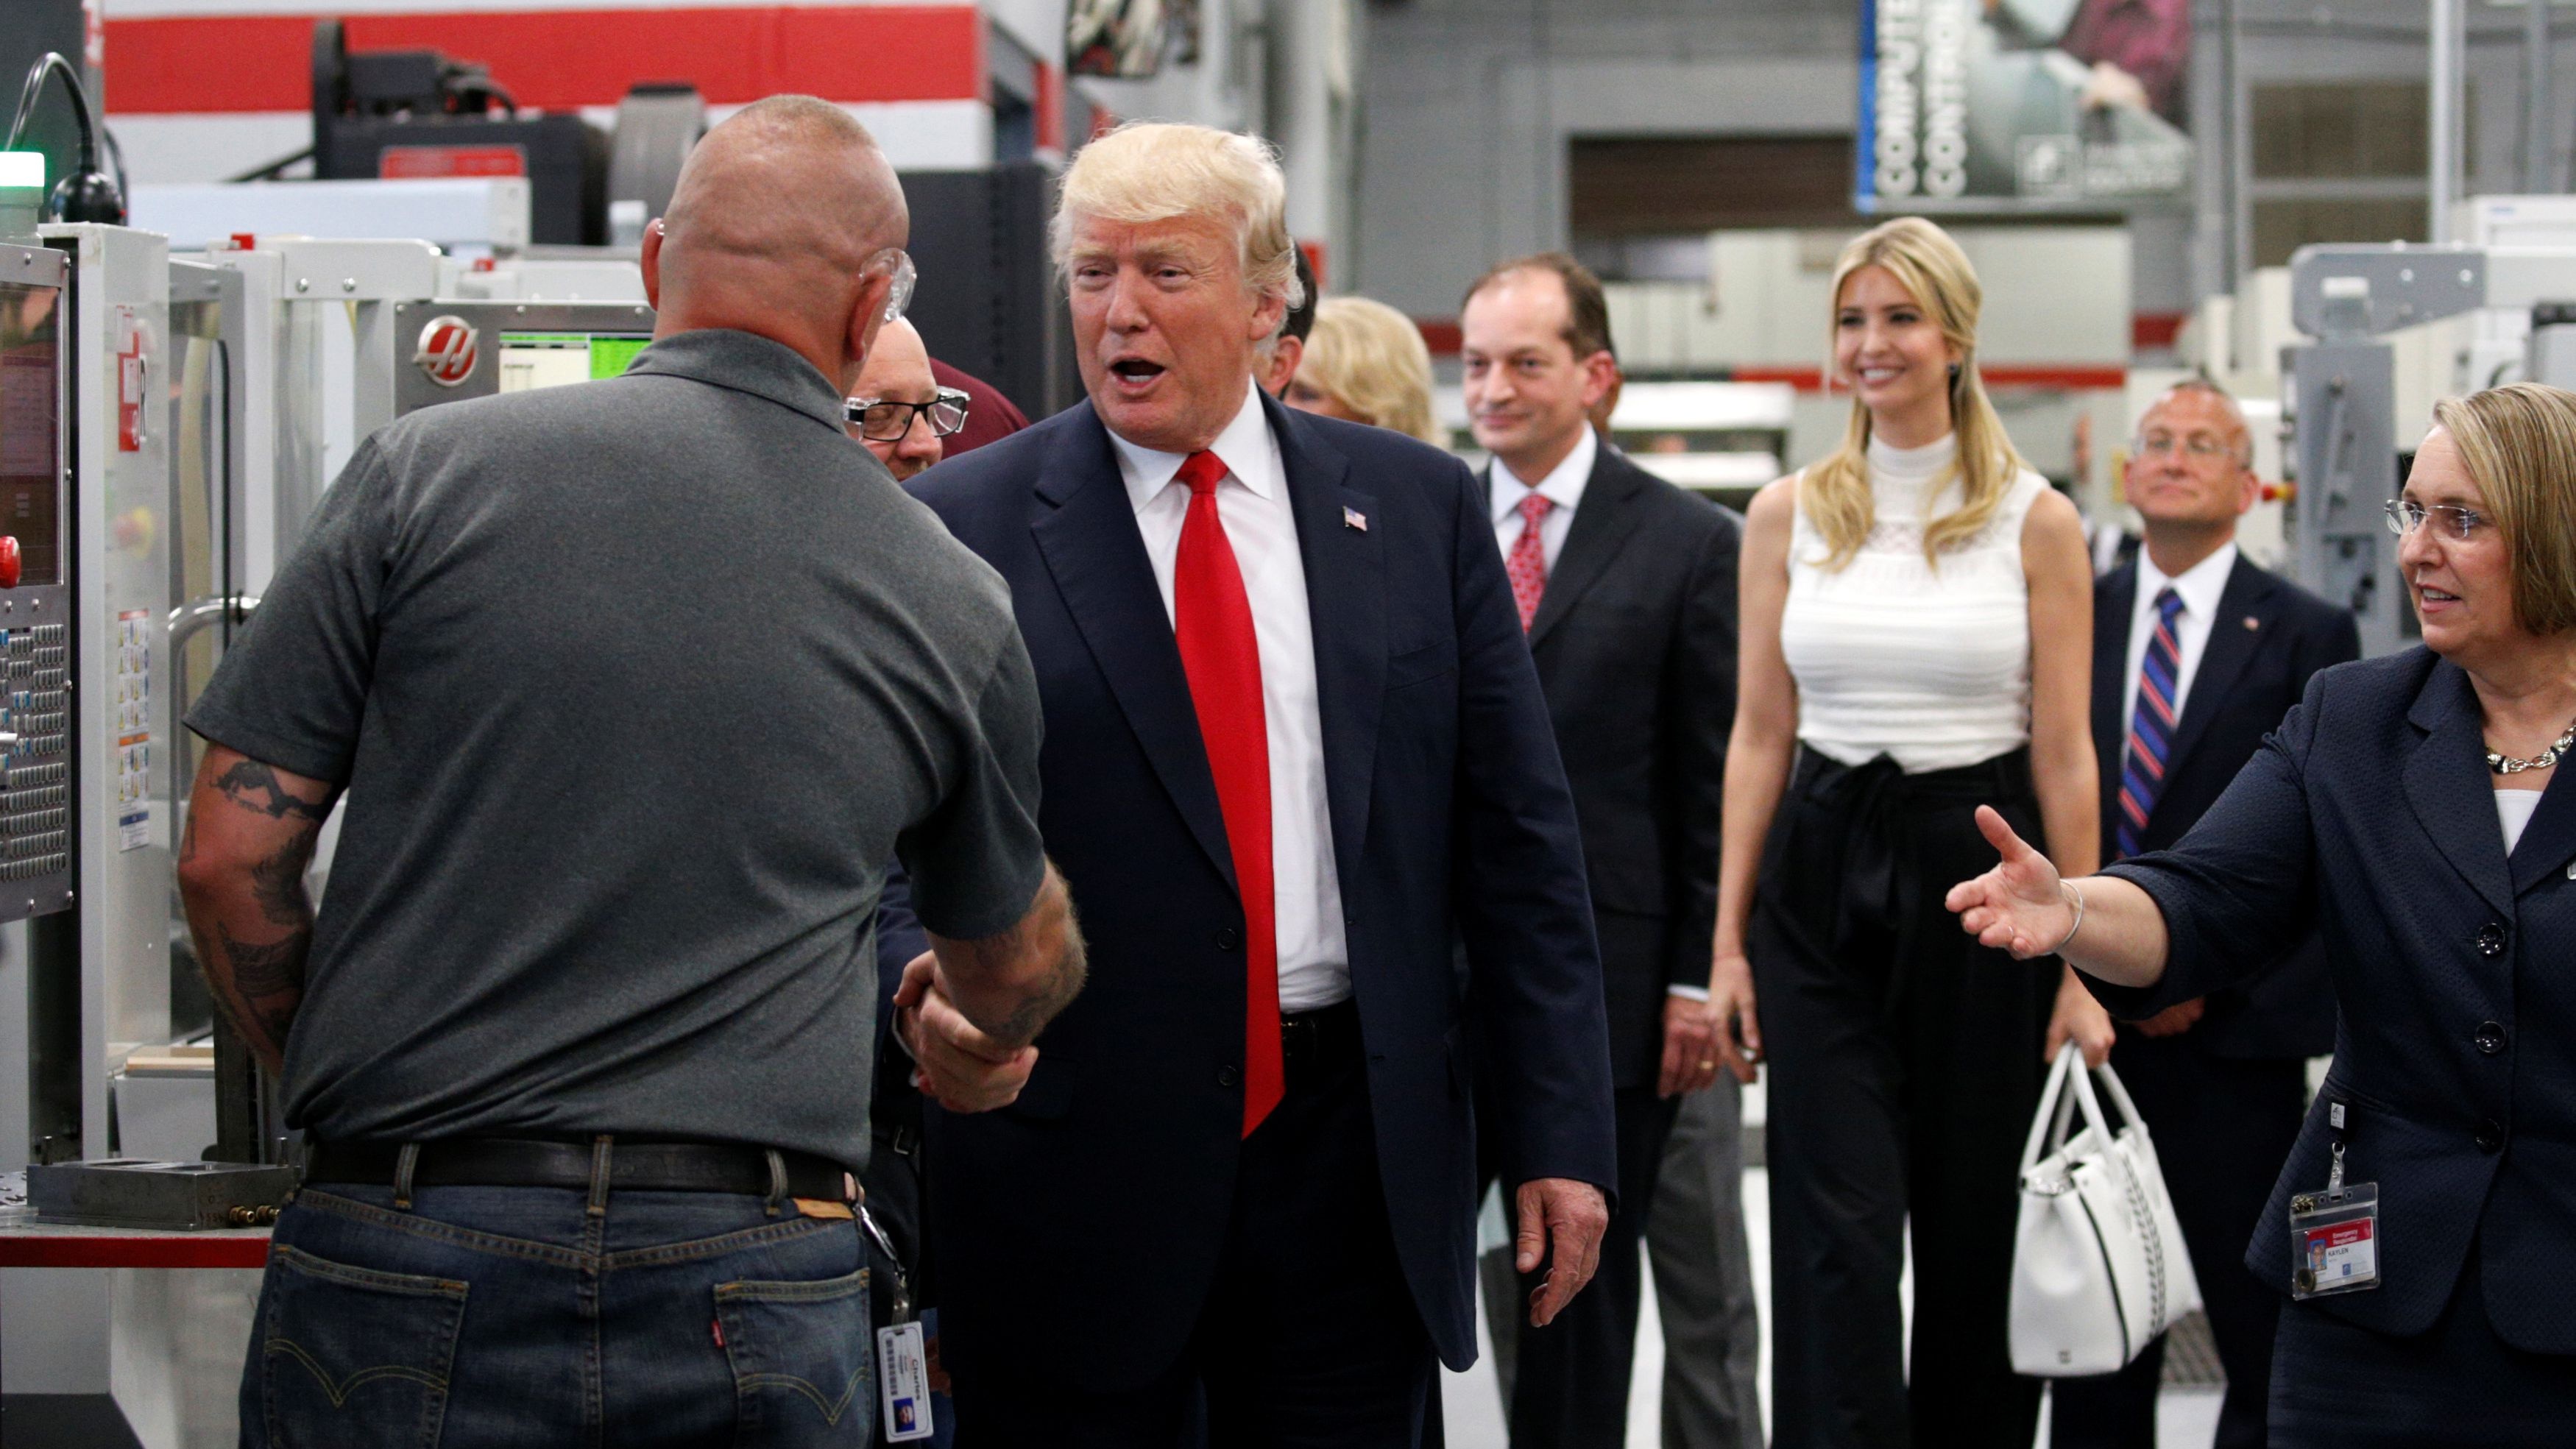 U.S. President Donald Trump shakes hands as he tours Waukesha County Technical College with his daughter Ivanka in Pewaukee, Wisconsin, U.S., June 13, 2017. REUTERS/Kevin Lamarque